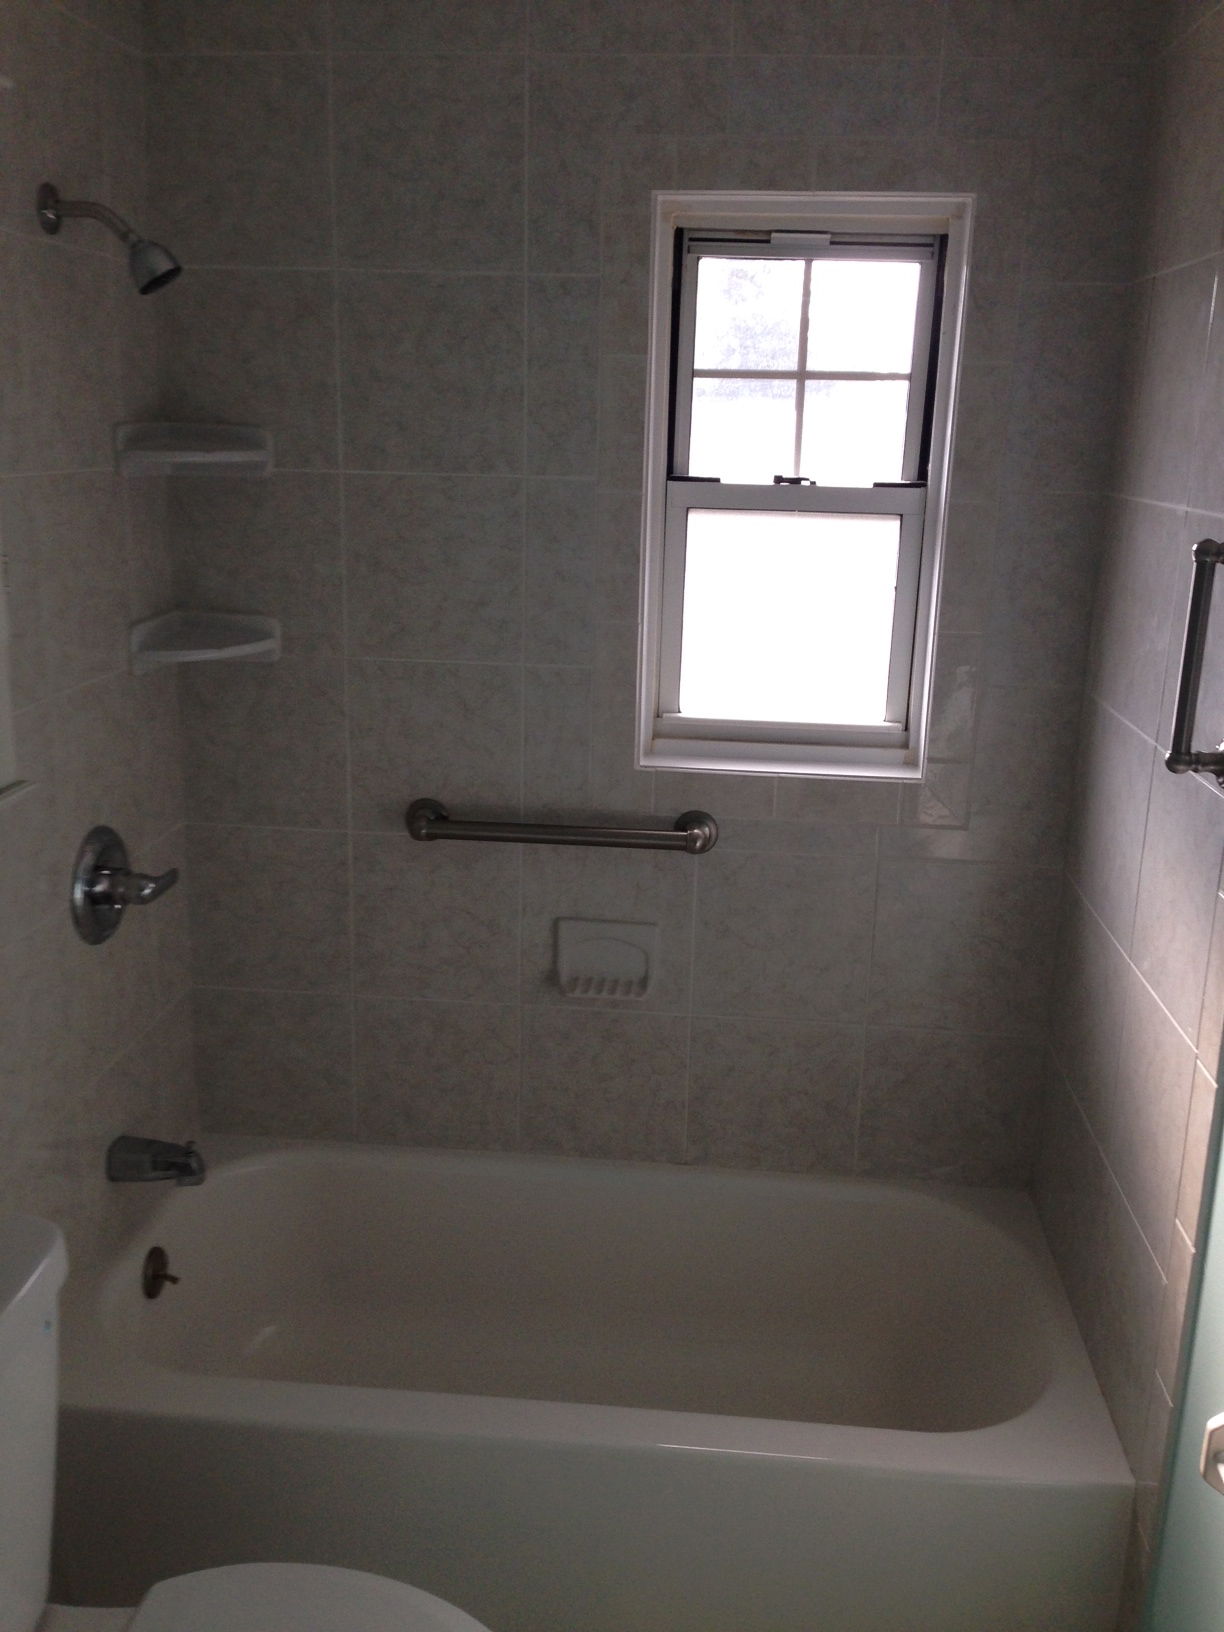 Tile work in bathrooms - Next Image